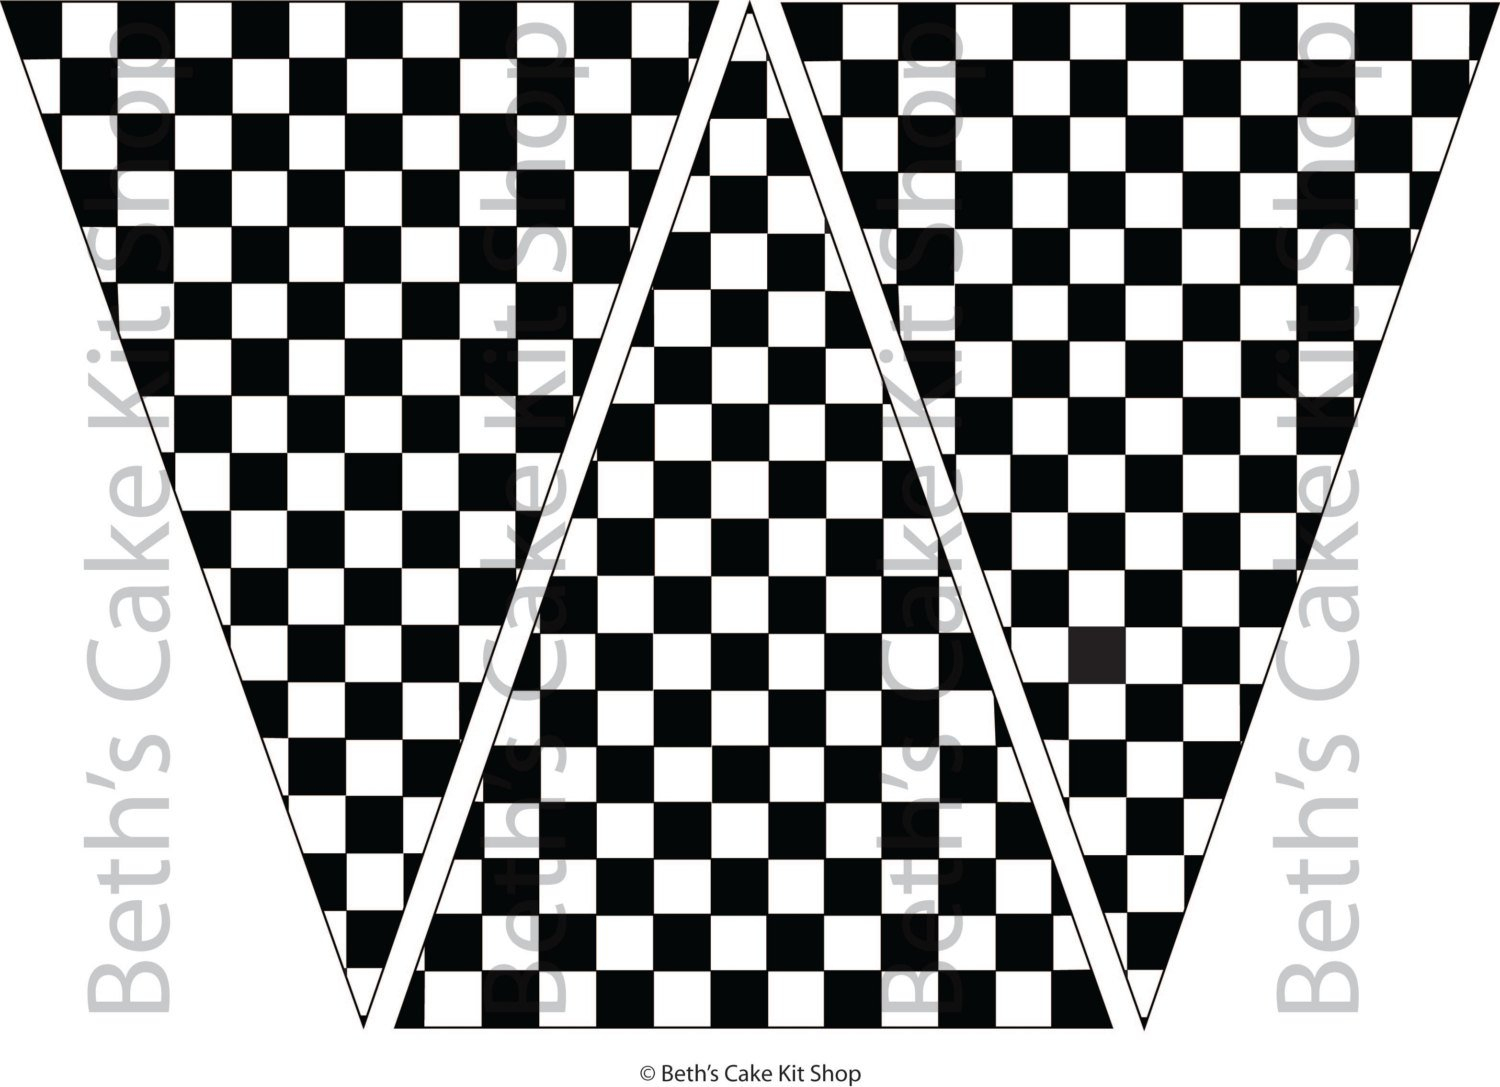 Checkered Flag Bunting Banner Download Party Backdrop | Etsy - Free Printable Checkered Flag Banner